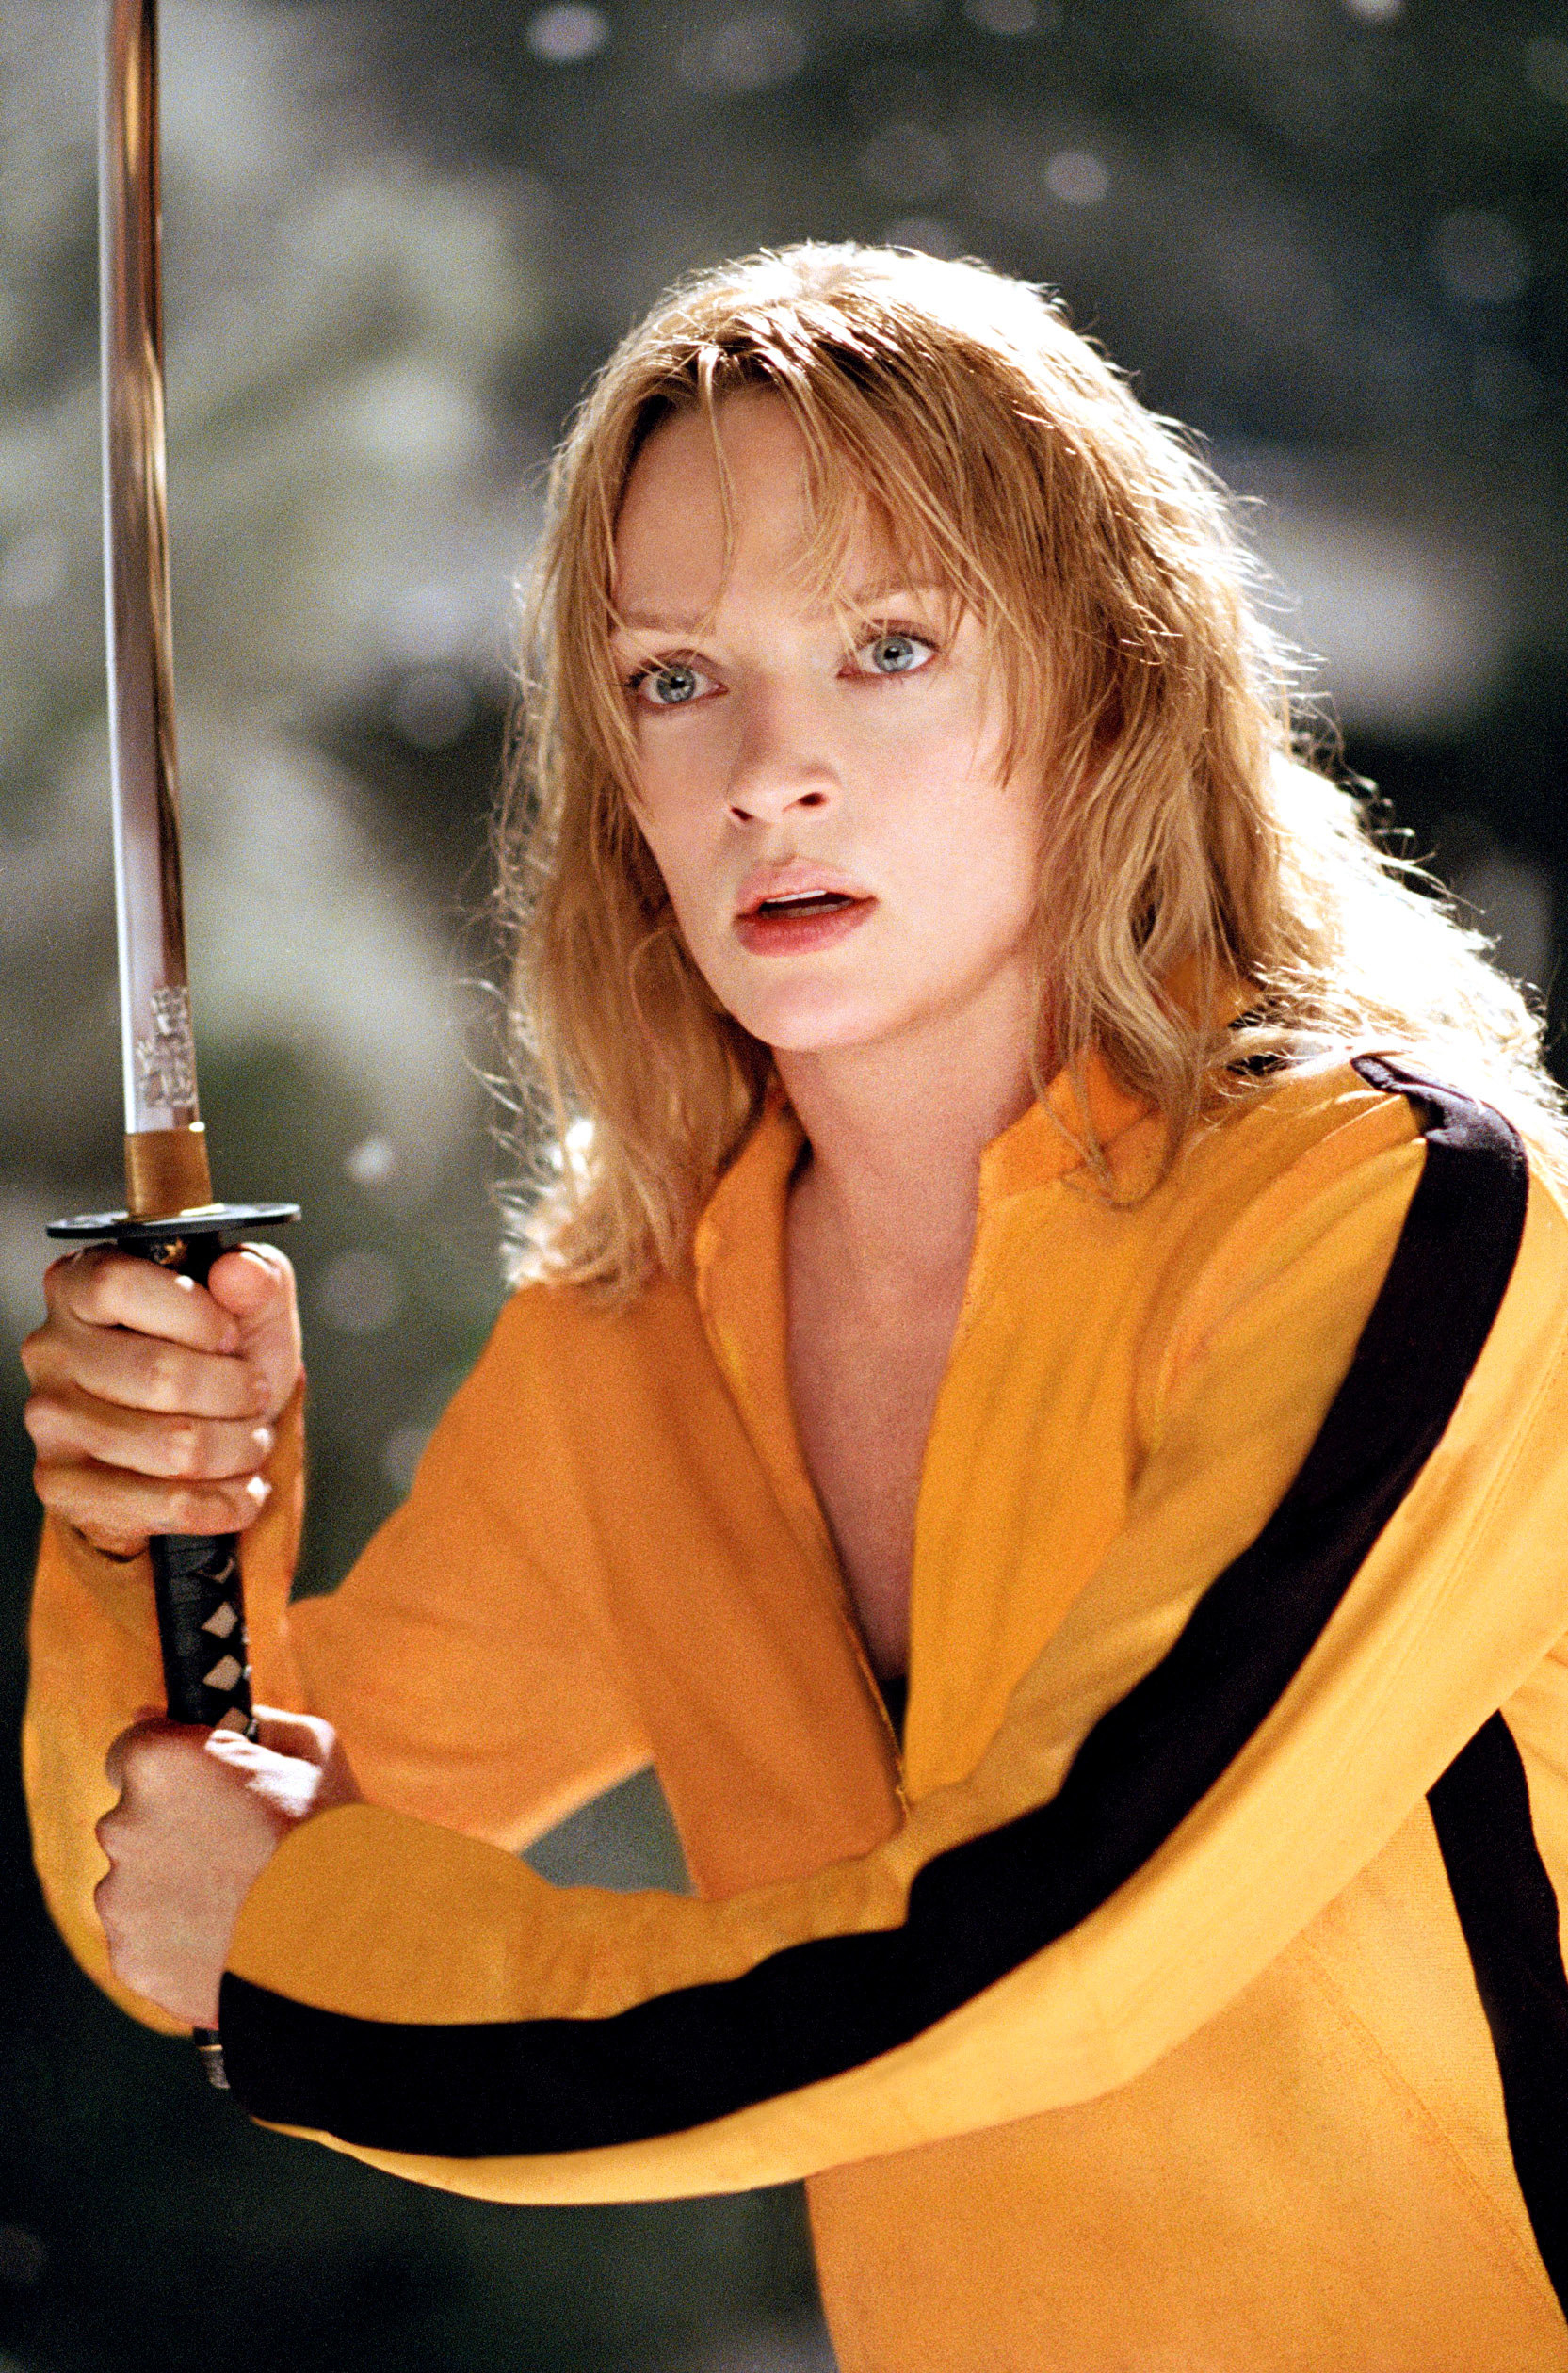 Uma in the film with a sword